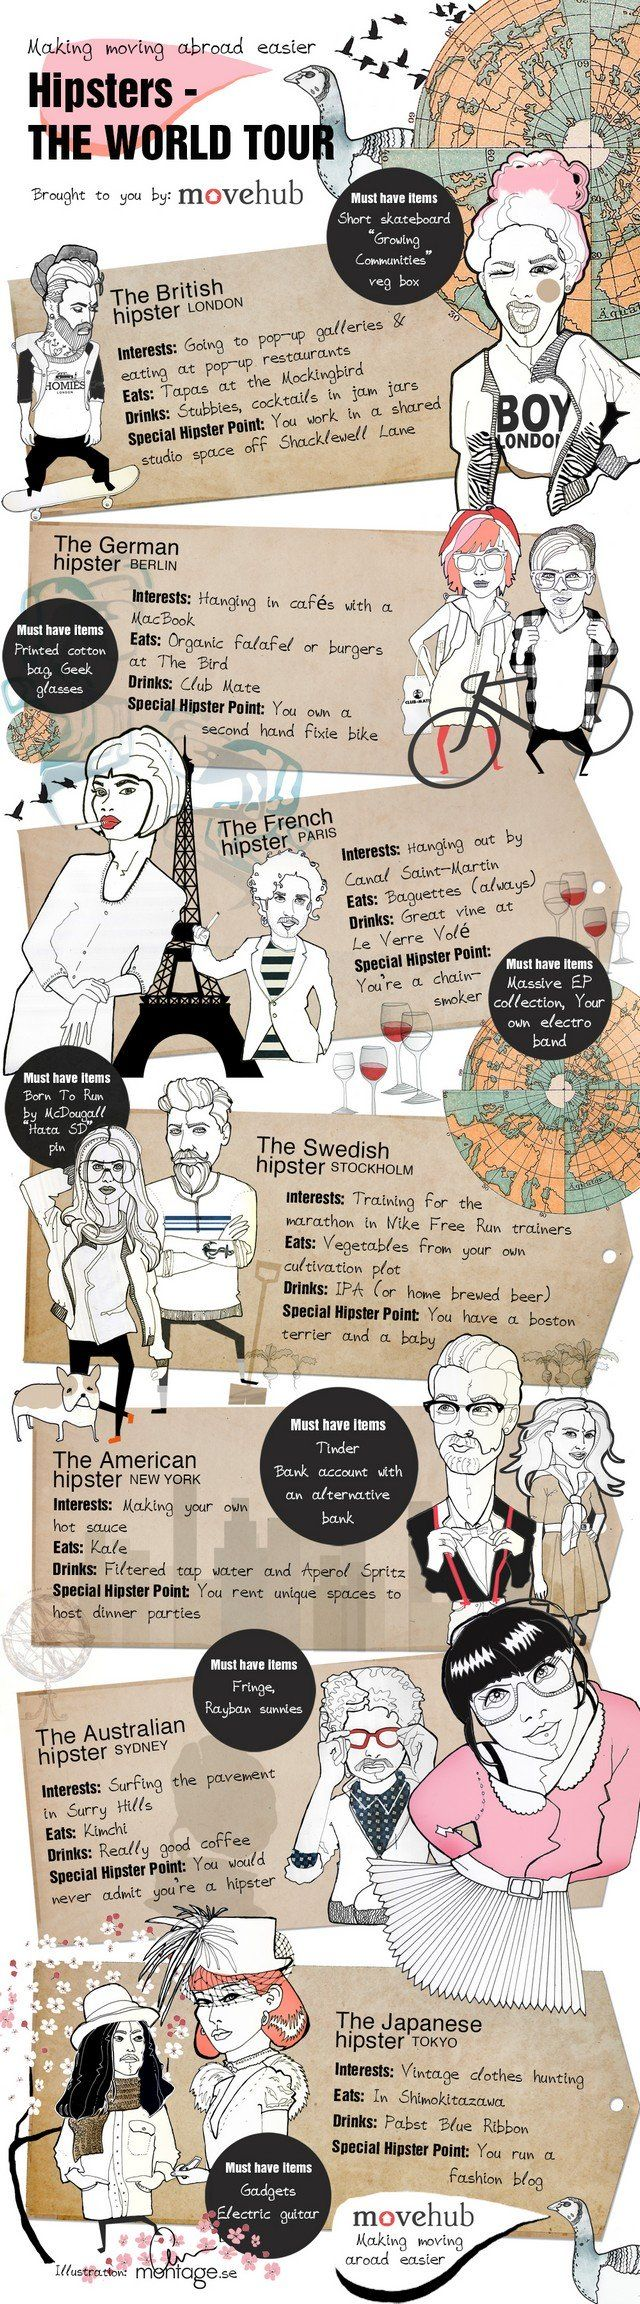 infographic: hipsters - the world tour